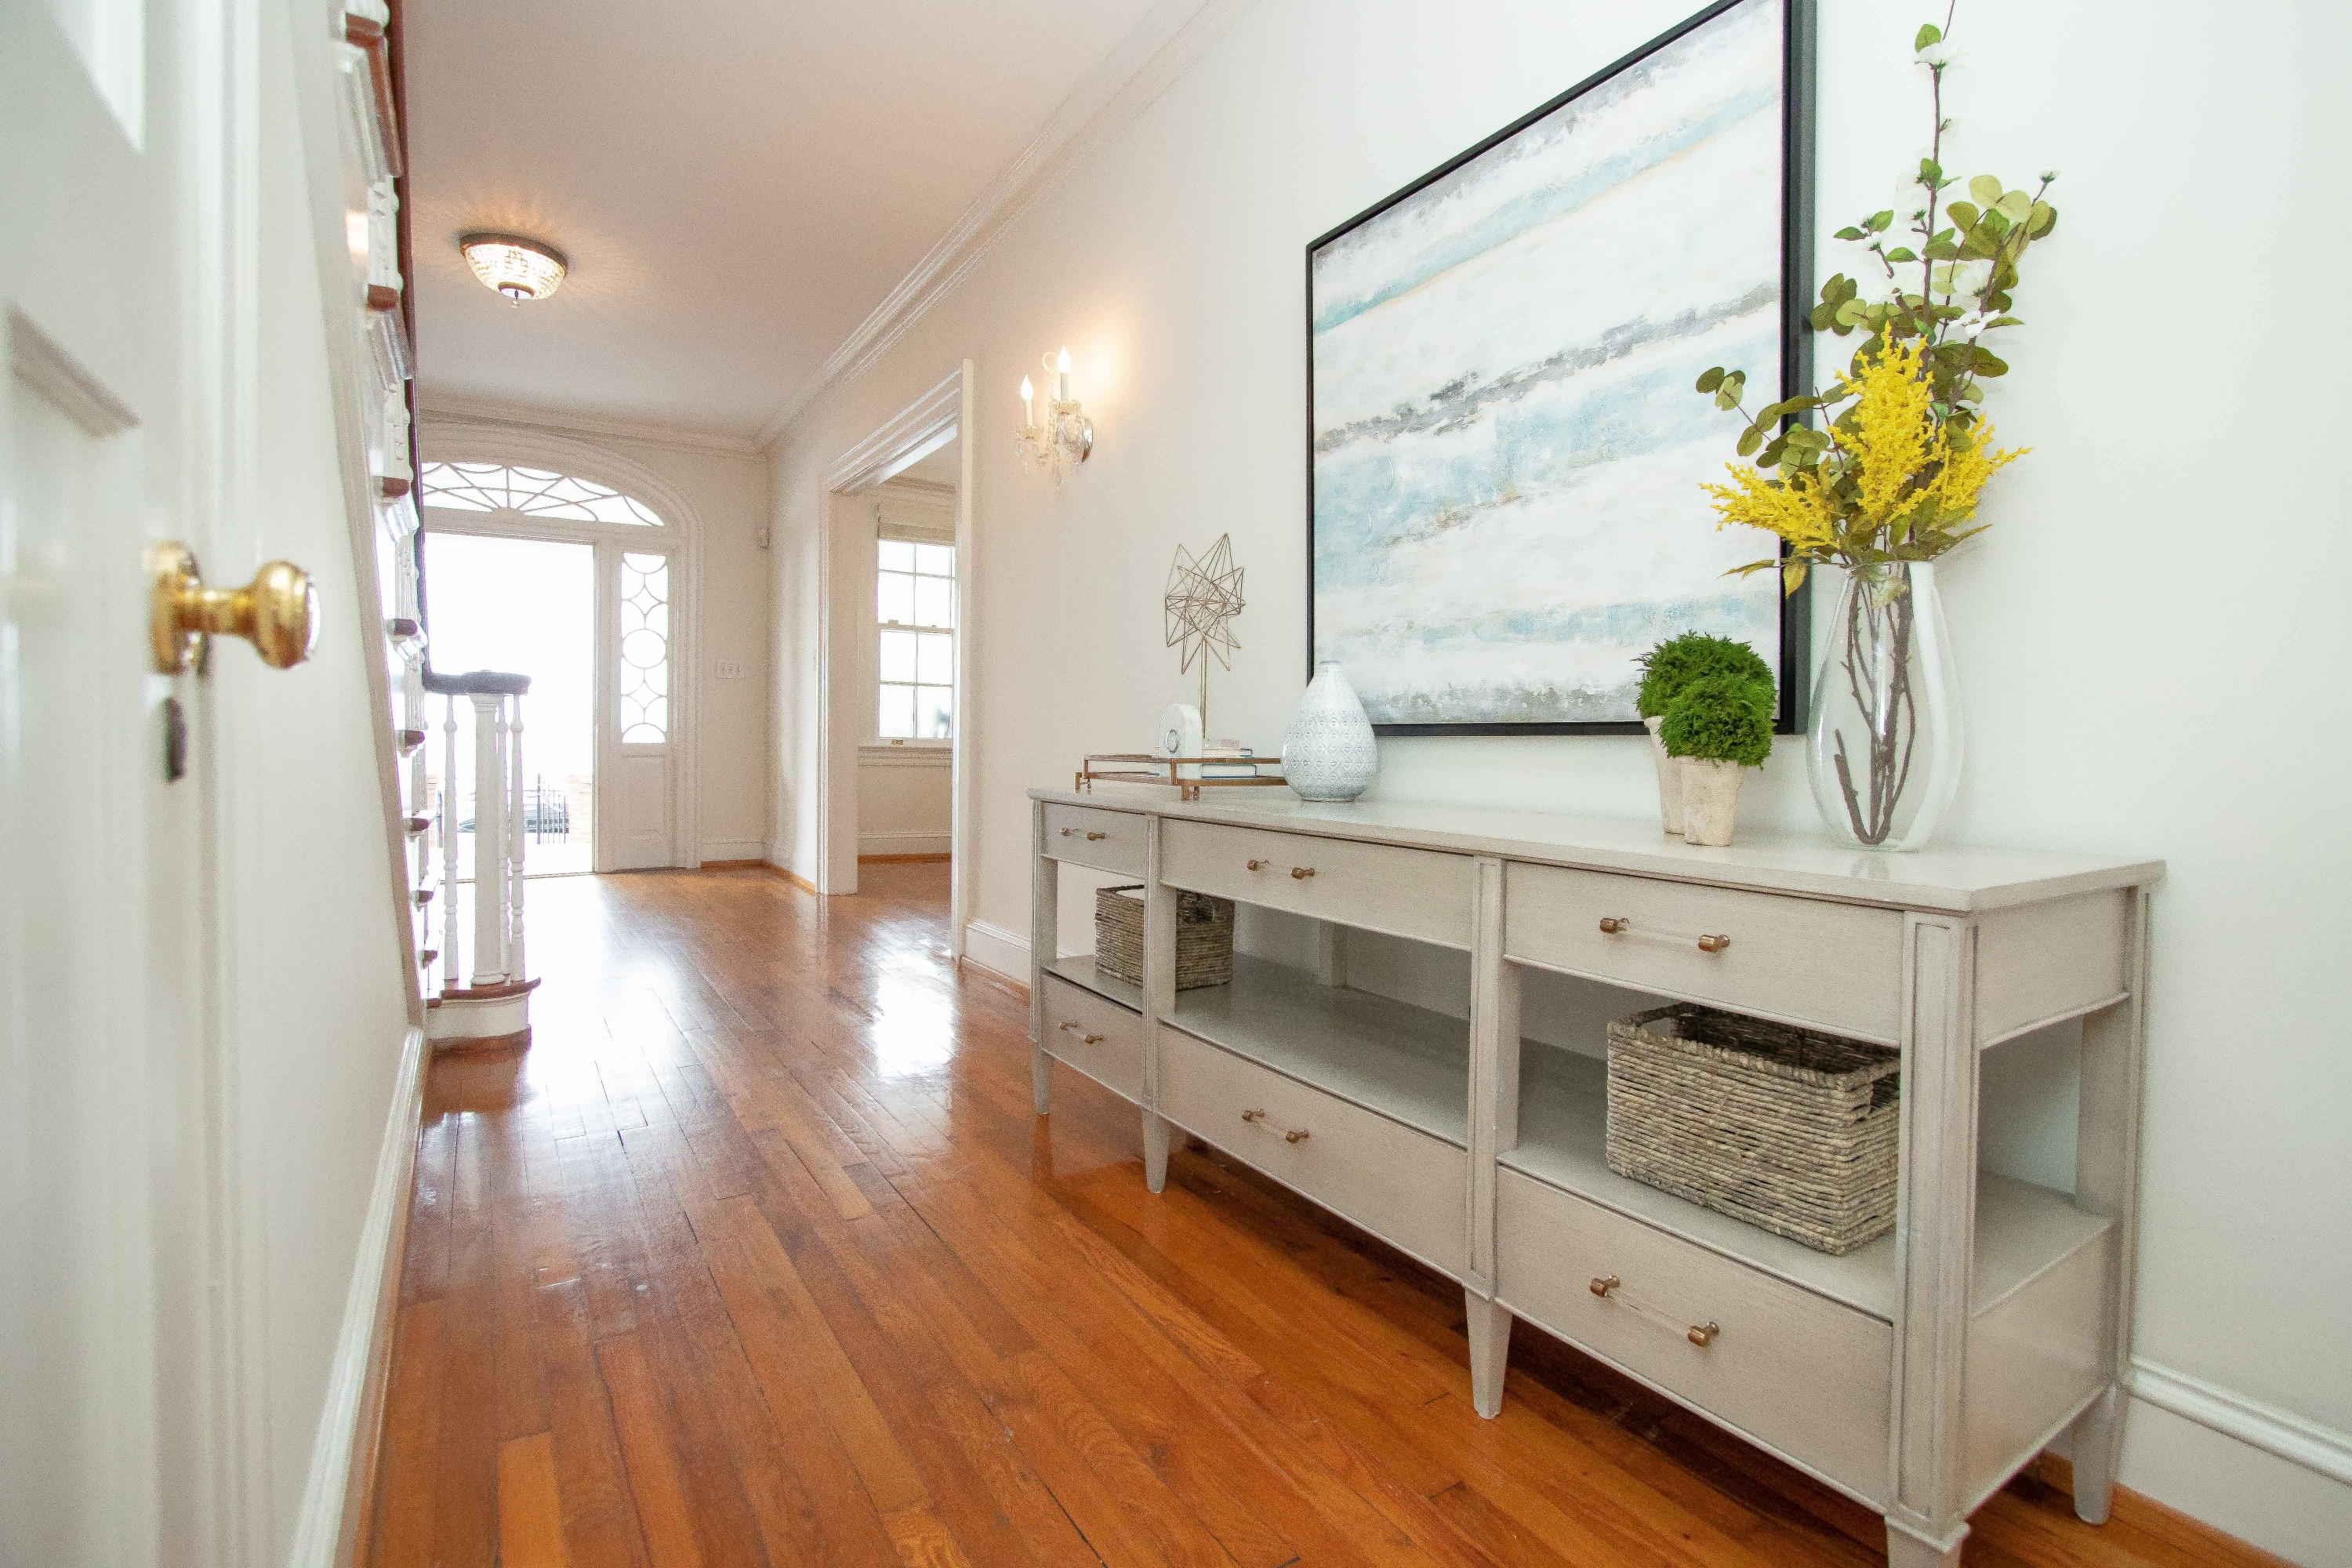 South of Broad Homes For Sale - 104 Murray, Charleston, SC - 32